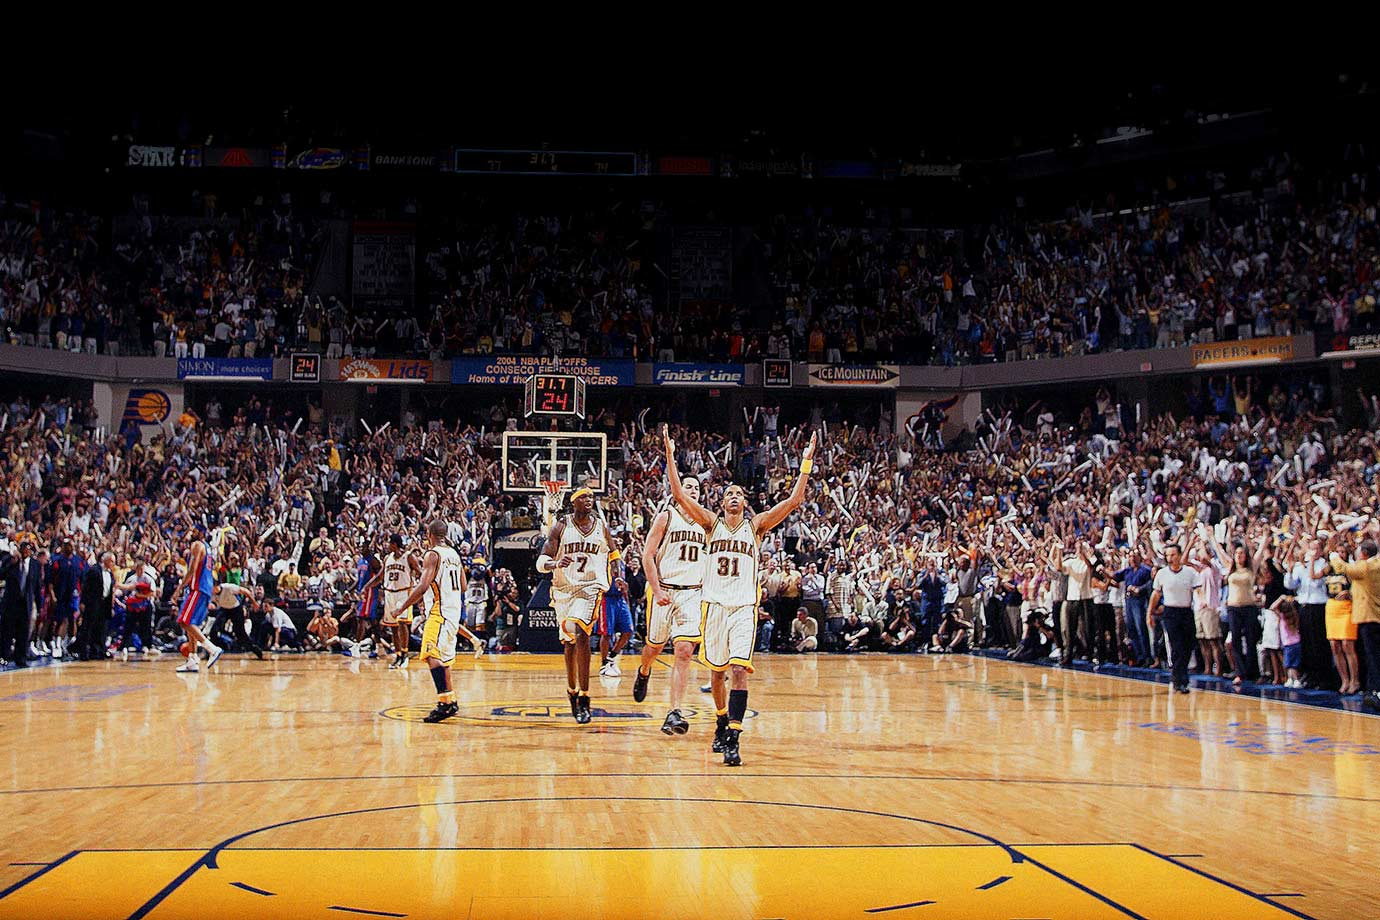 2004 Eastern Conference Finals, Game 1